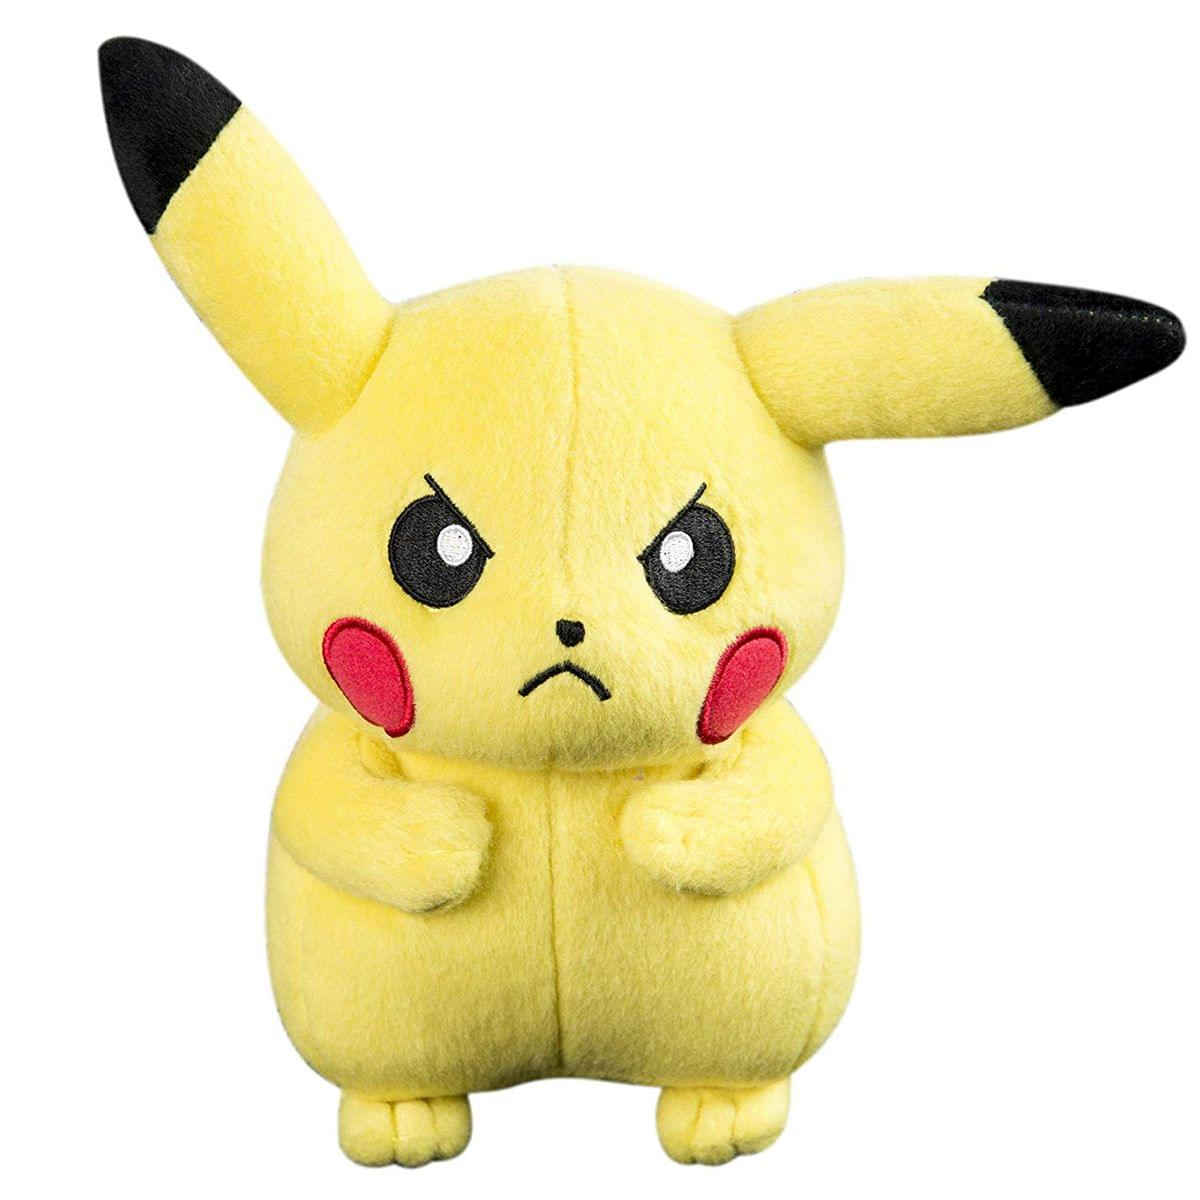 Pokemon Basic 8-Inch Plush - Angry Pikachu - image 1 of 1